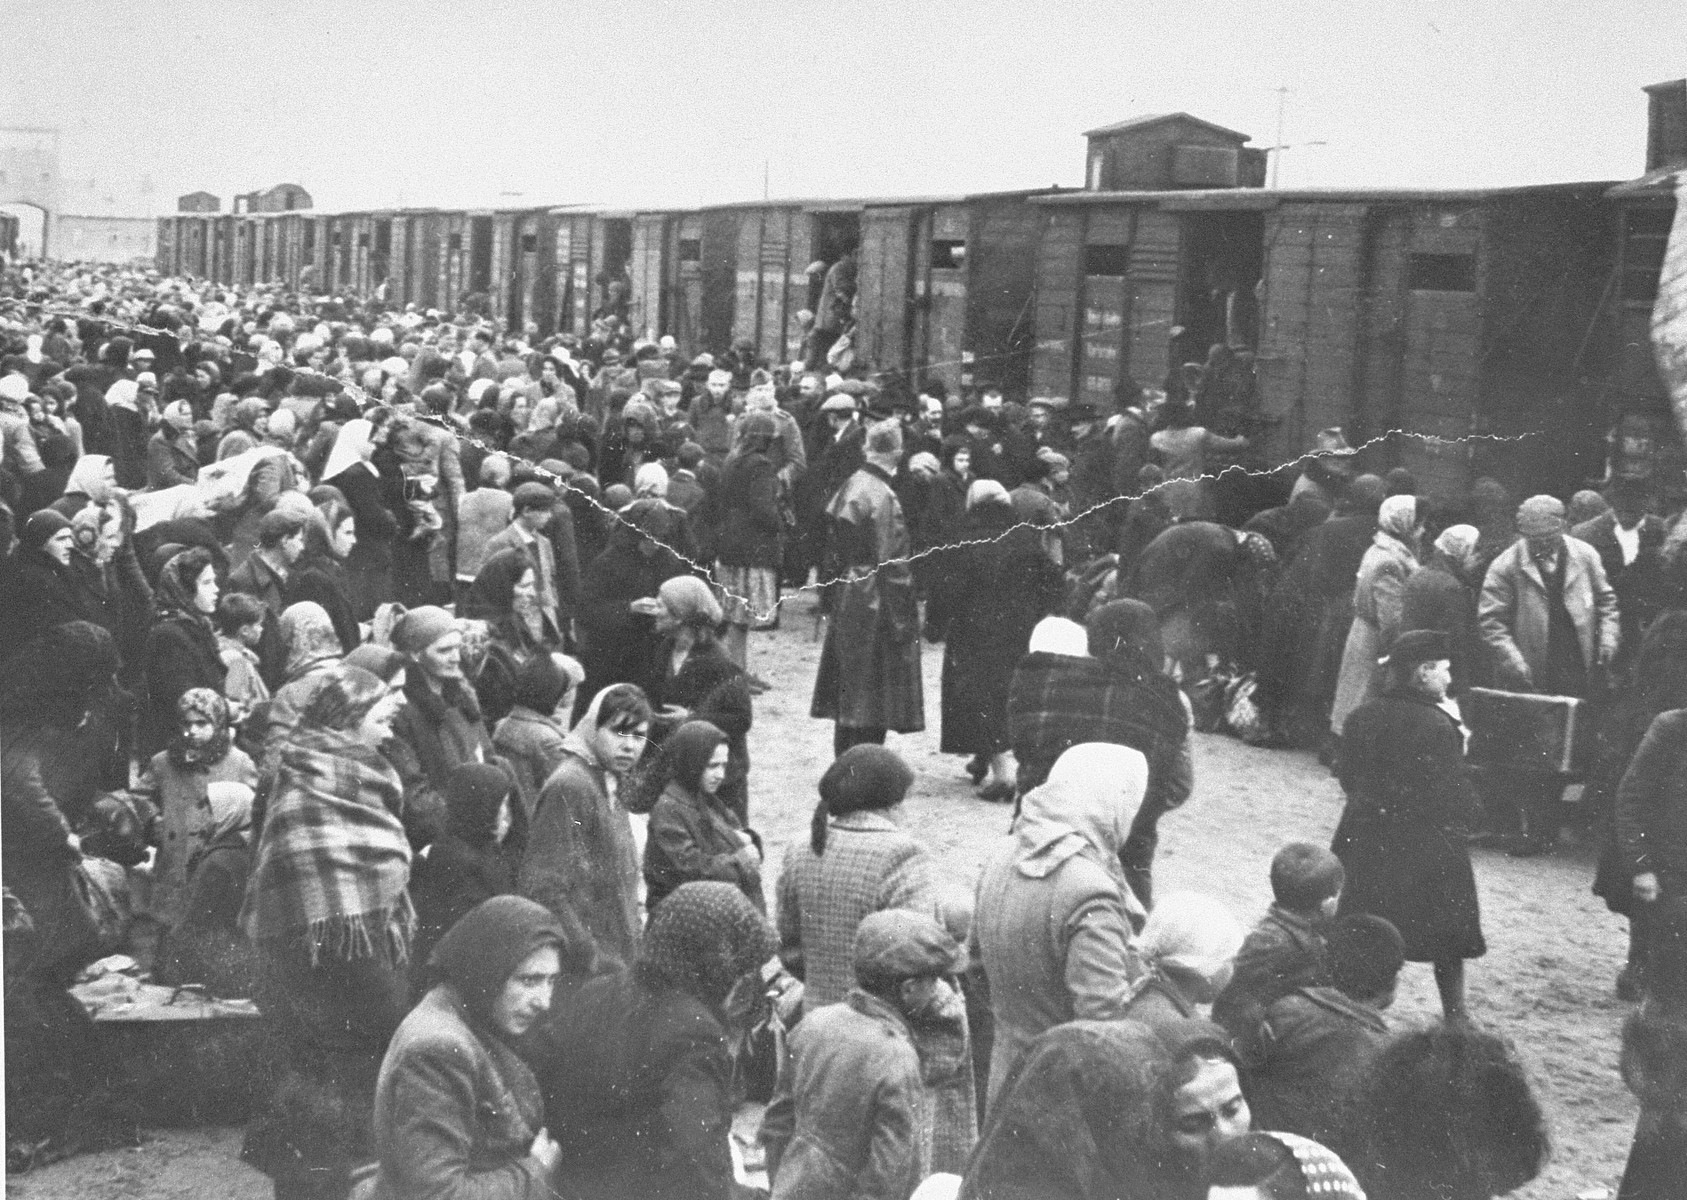 Jews from Subcarpathian Rus await selection on the ramp at Auschwitz-Birkenau.